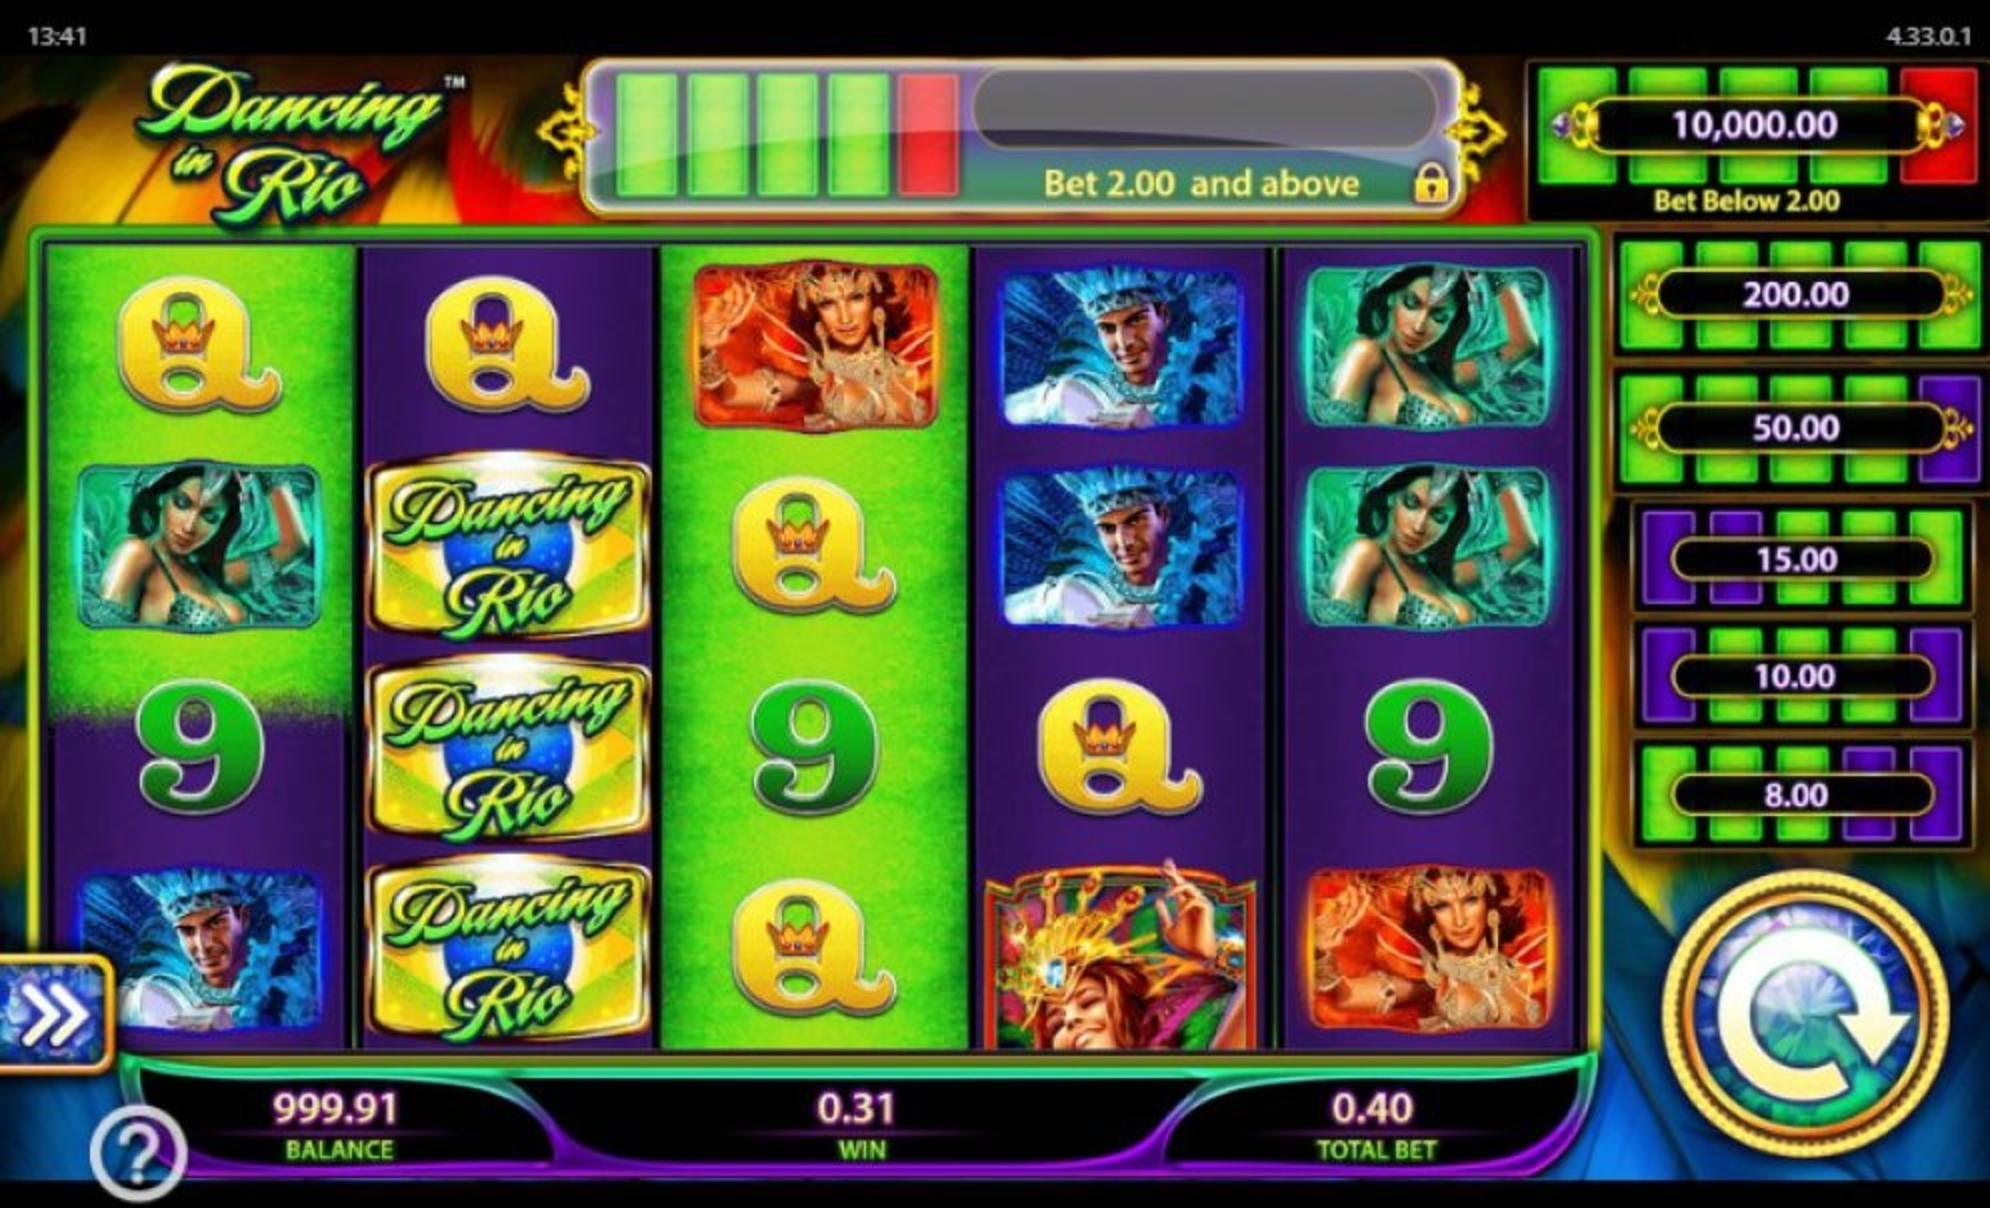 Dancing in Rio Online Slot Demo Game by WMS